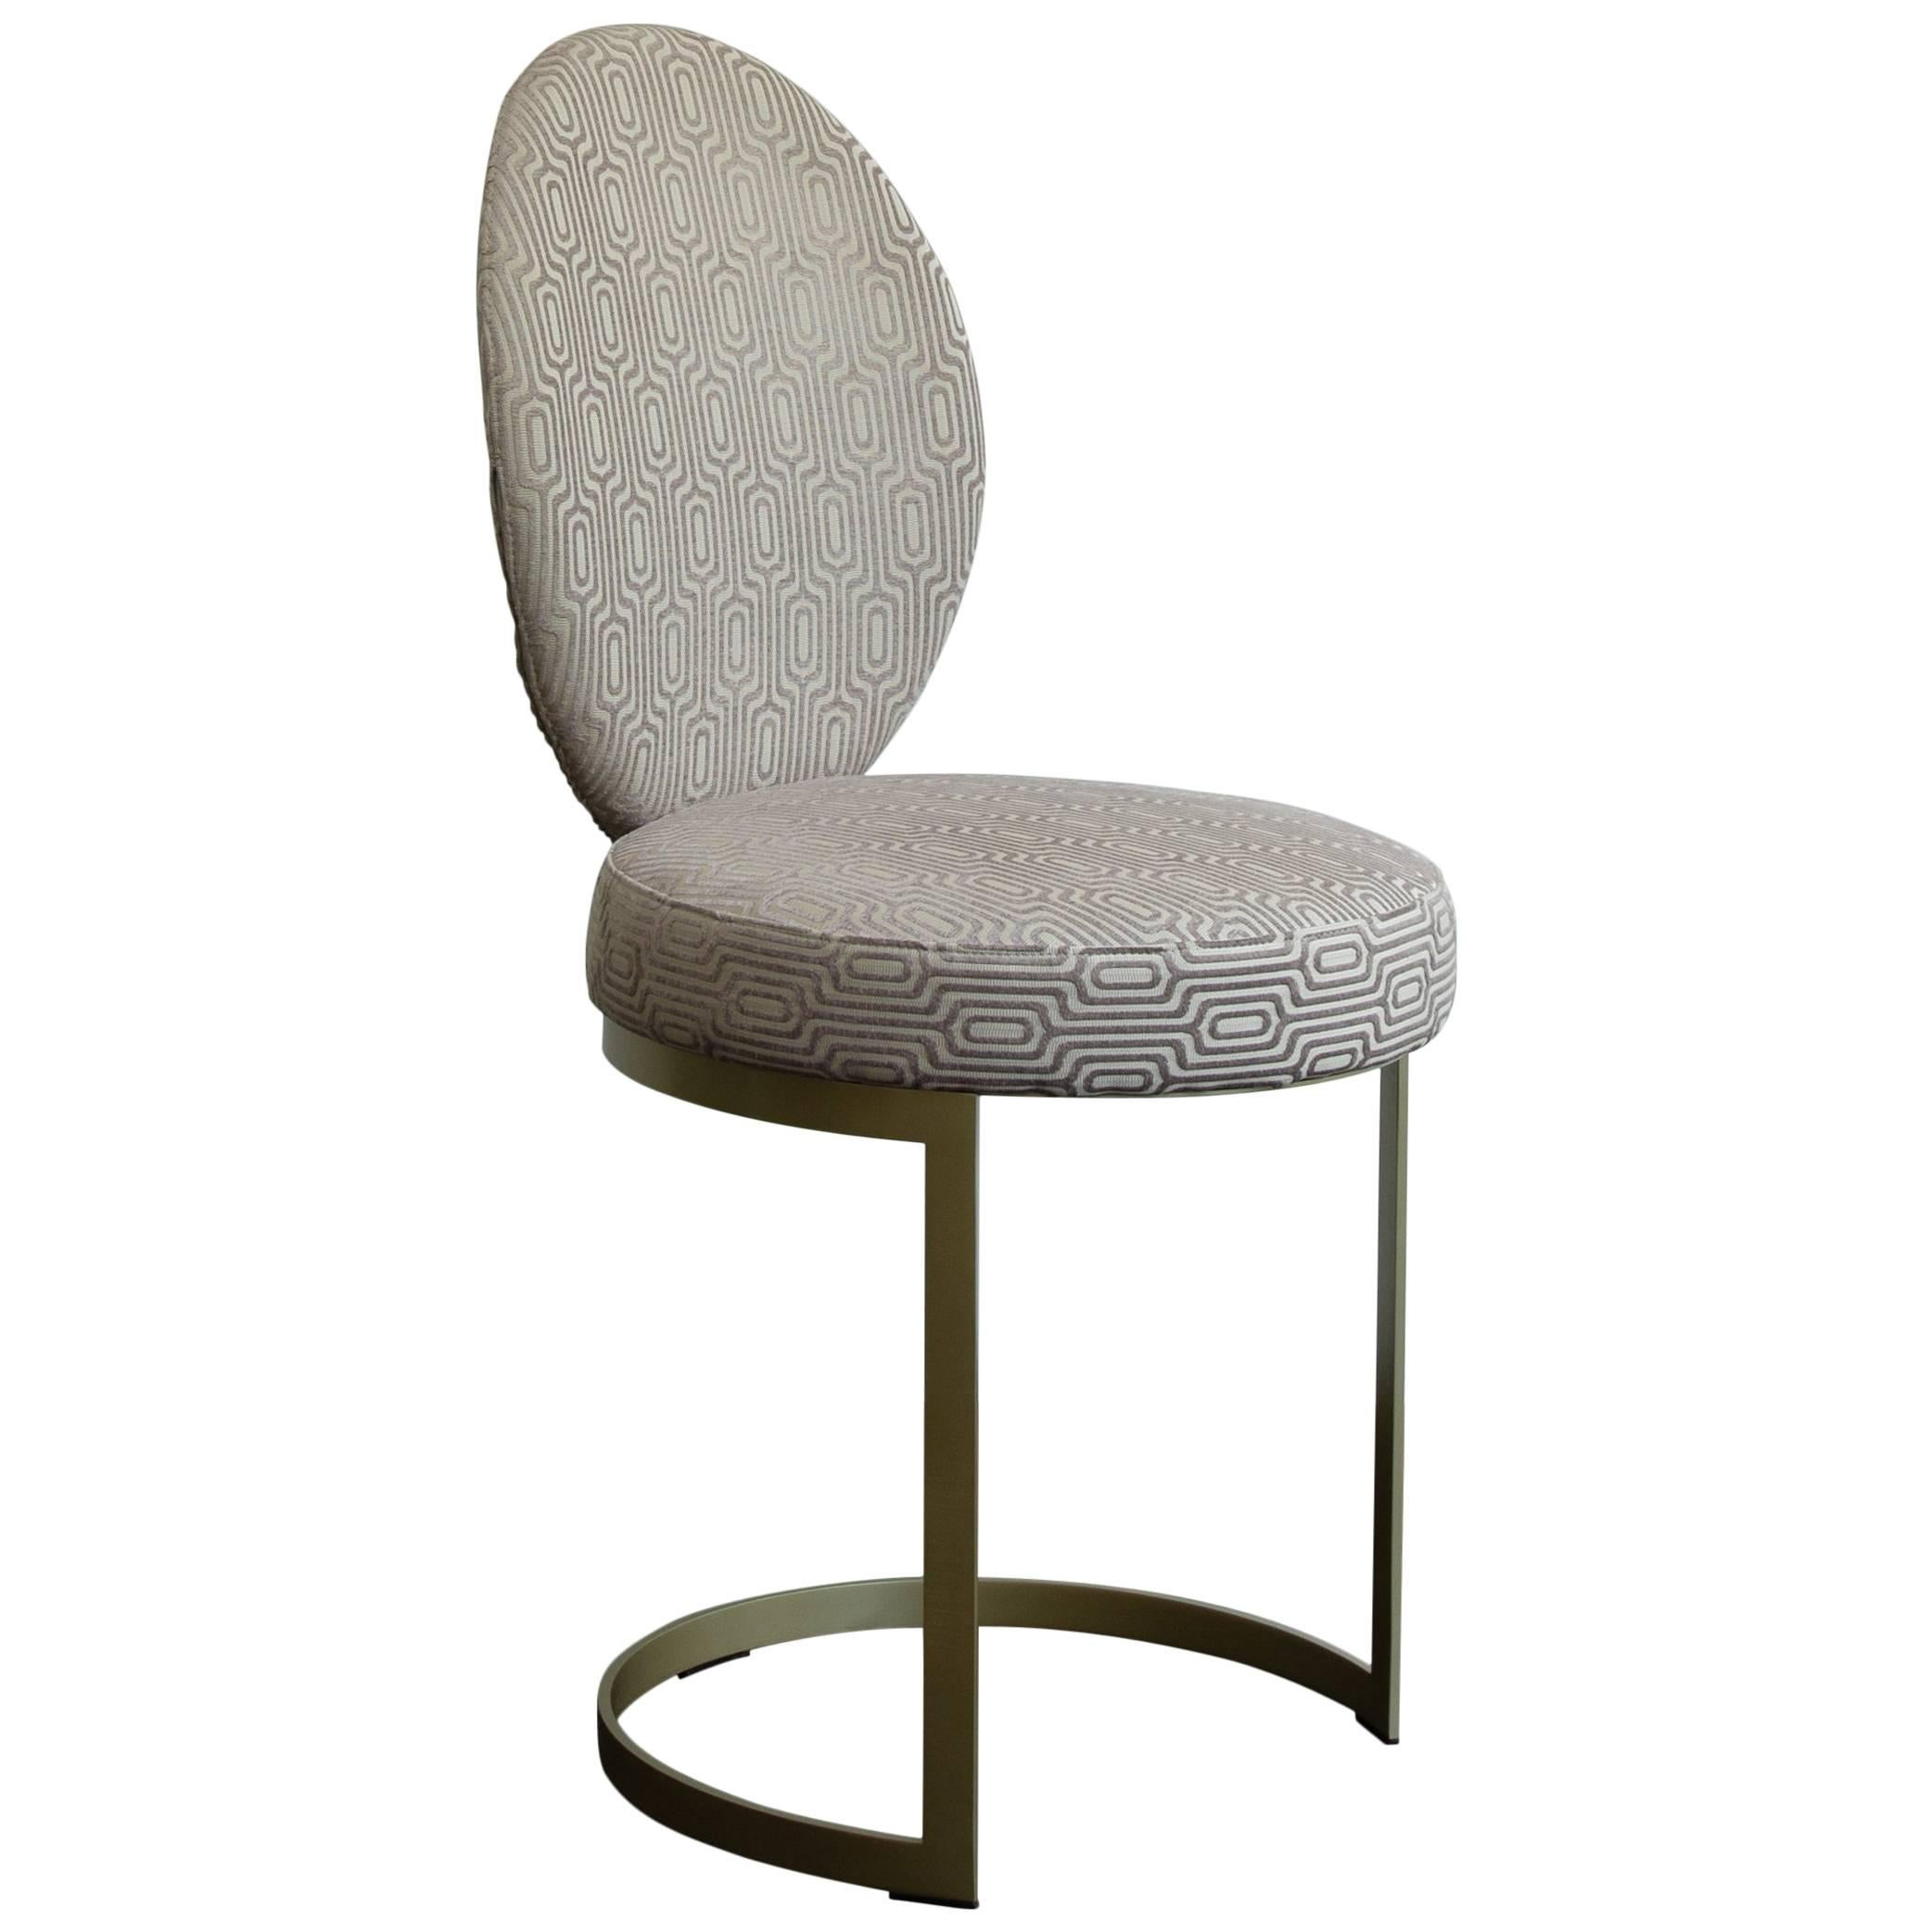 Contemporary art furniture Luxurious Ola Dining Chair With Brass Finishing And Rose Fabric Contemporary Art Deco For Sale Interior Design Ola Dining Chair With Brass Finishing And Rose Fabric Contemporary